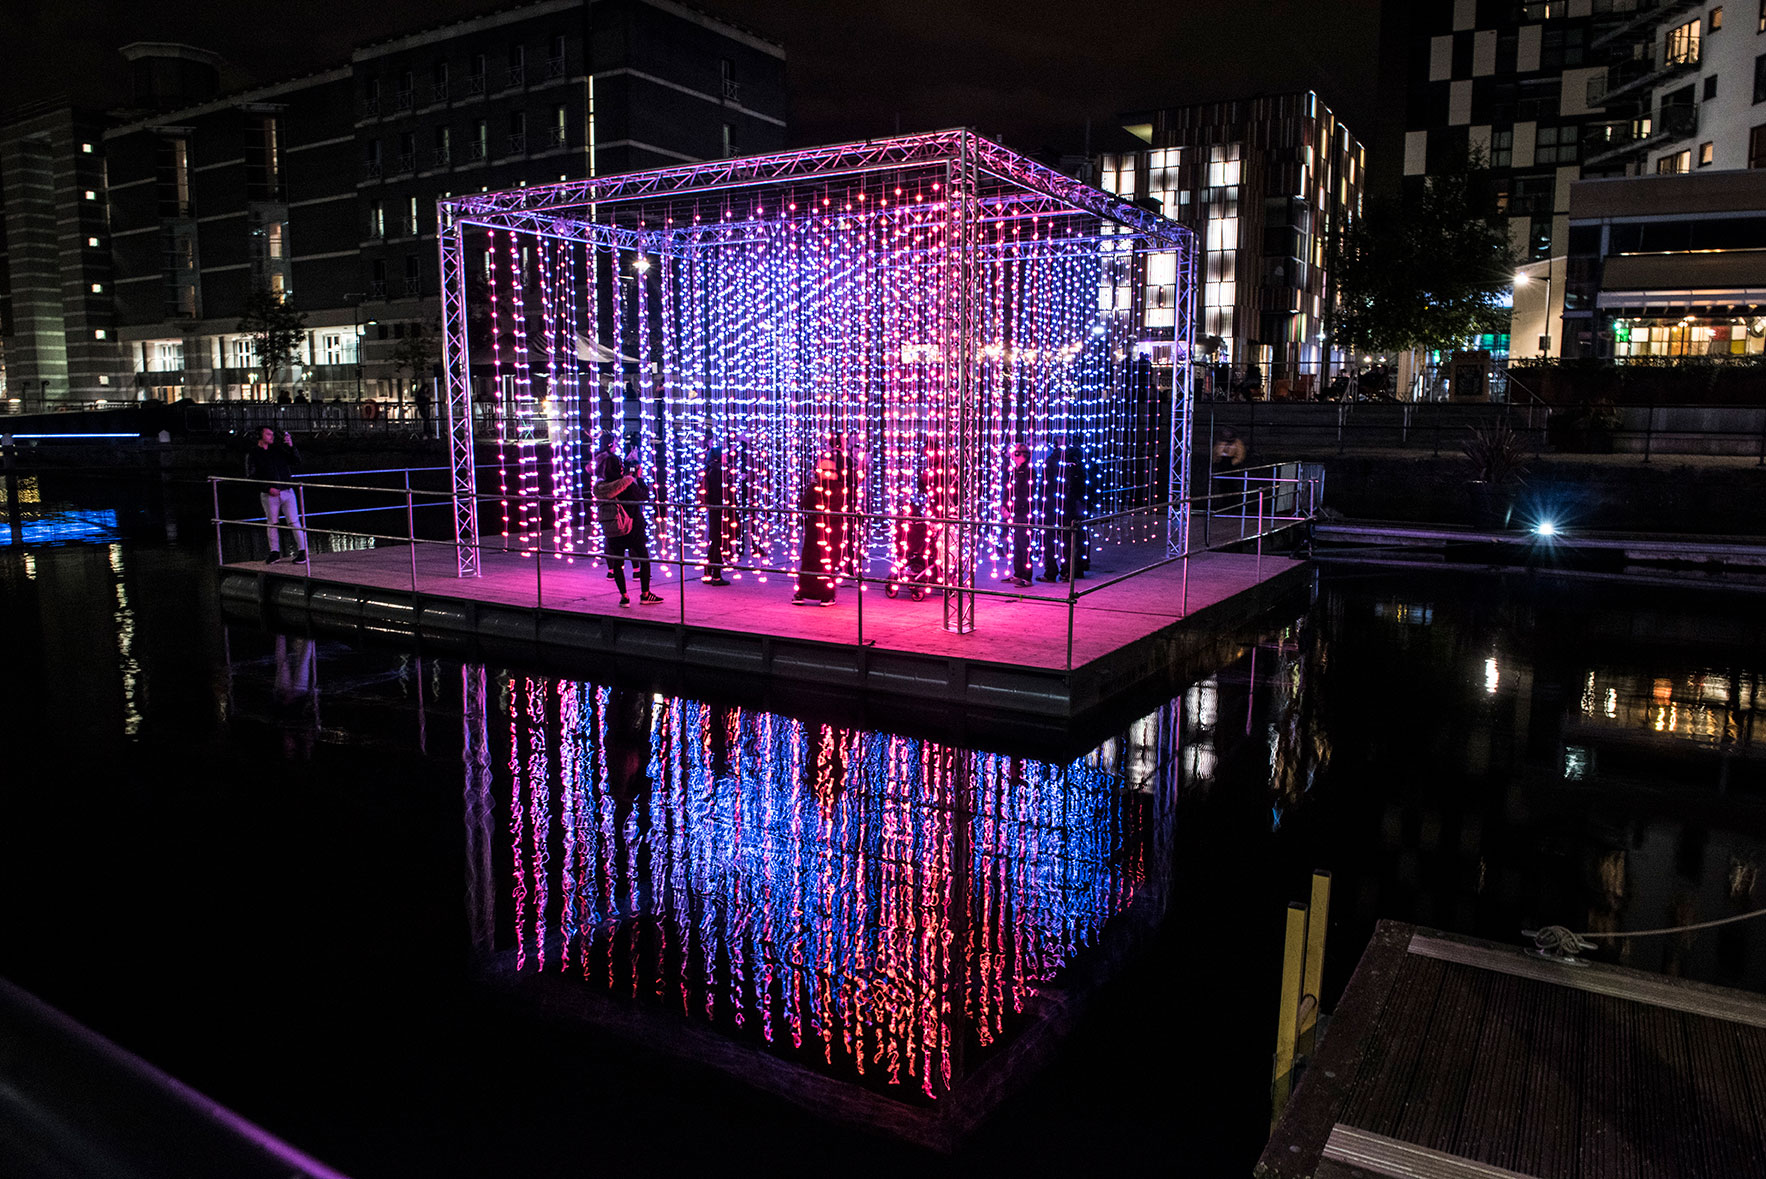 Light Night Leeds Festival:  'Light Water, Dark Sky' an immersive, floating,light installation by renowned international artists Squidsoup set to the track 'Unicorn' by the esteemed electronic musician Four Tet. Find out more...